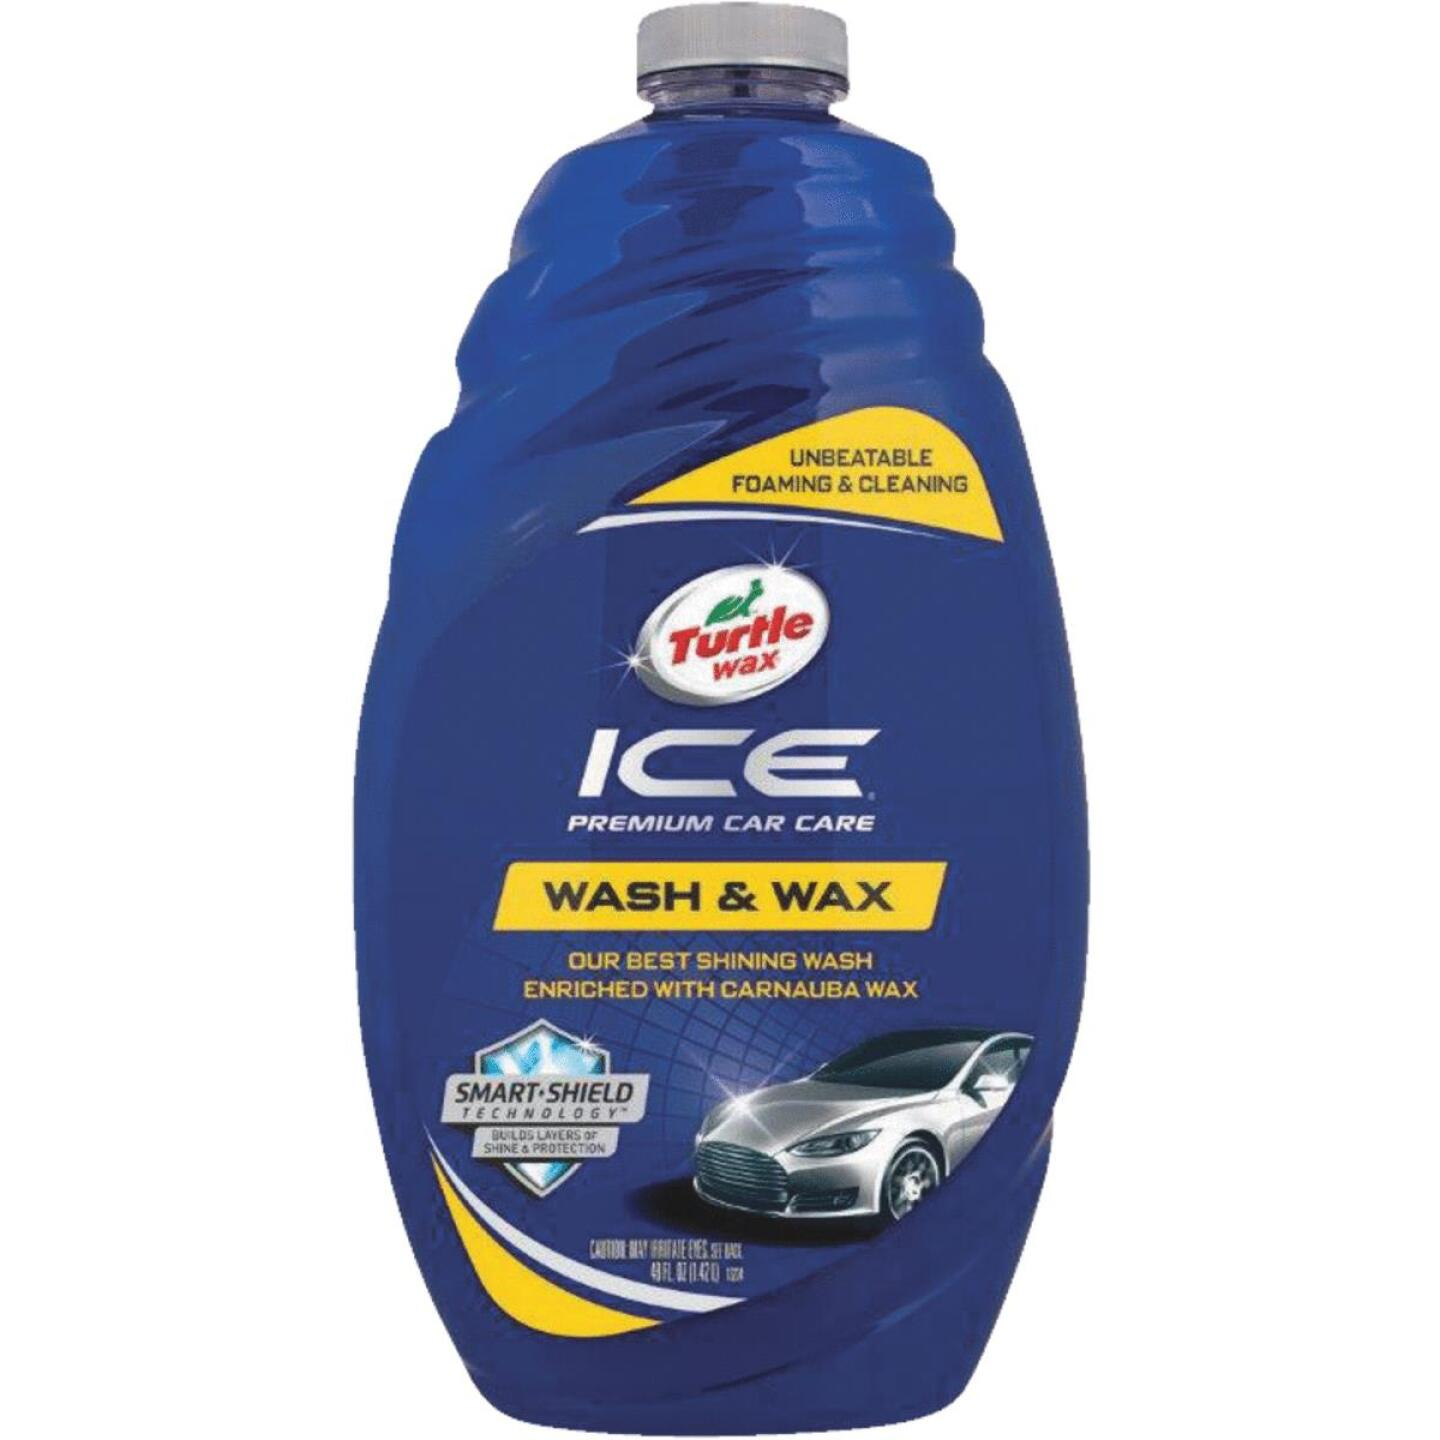 Turtle Wax ICE 48 Oz. Liquid Car Wash & Wax Image 1